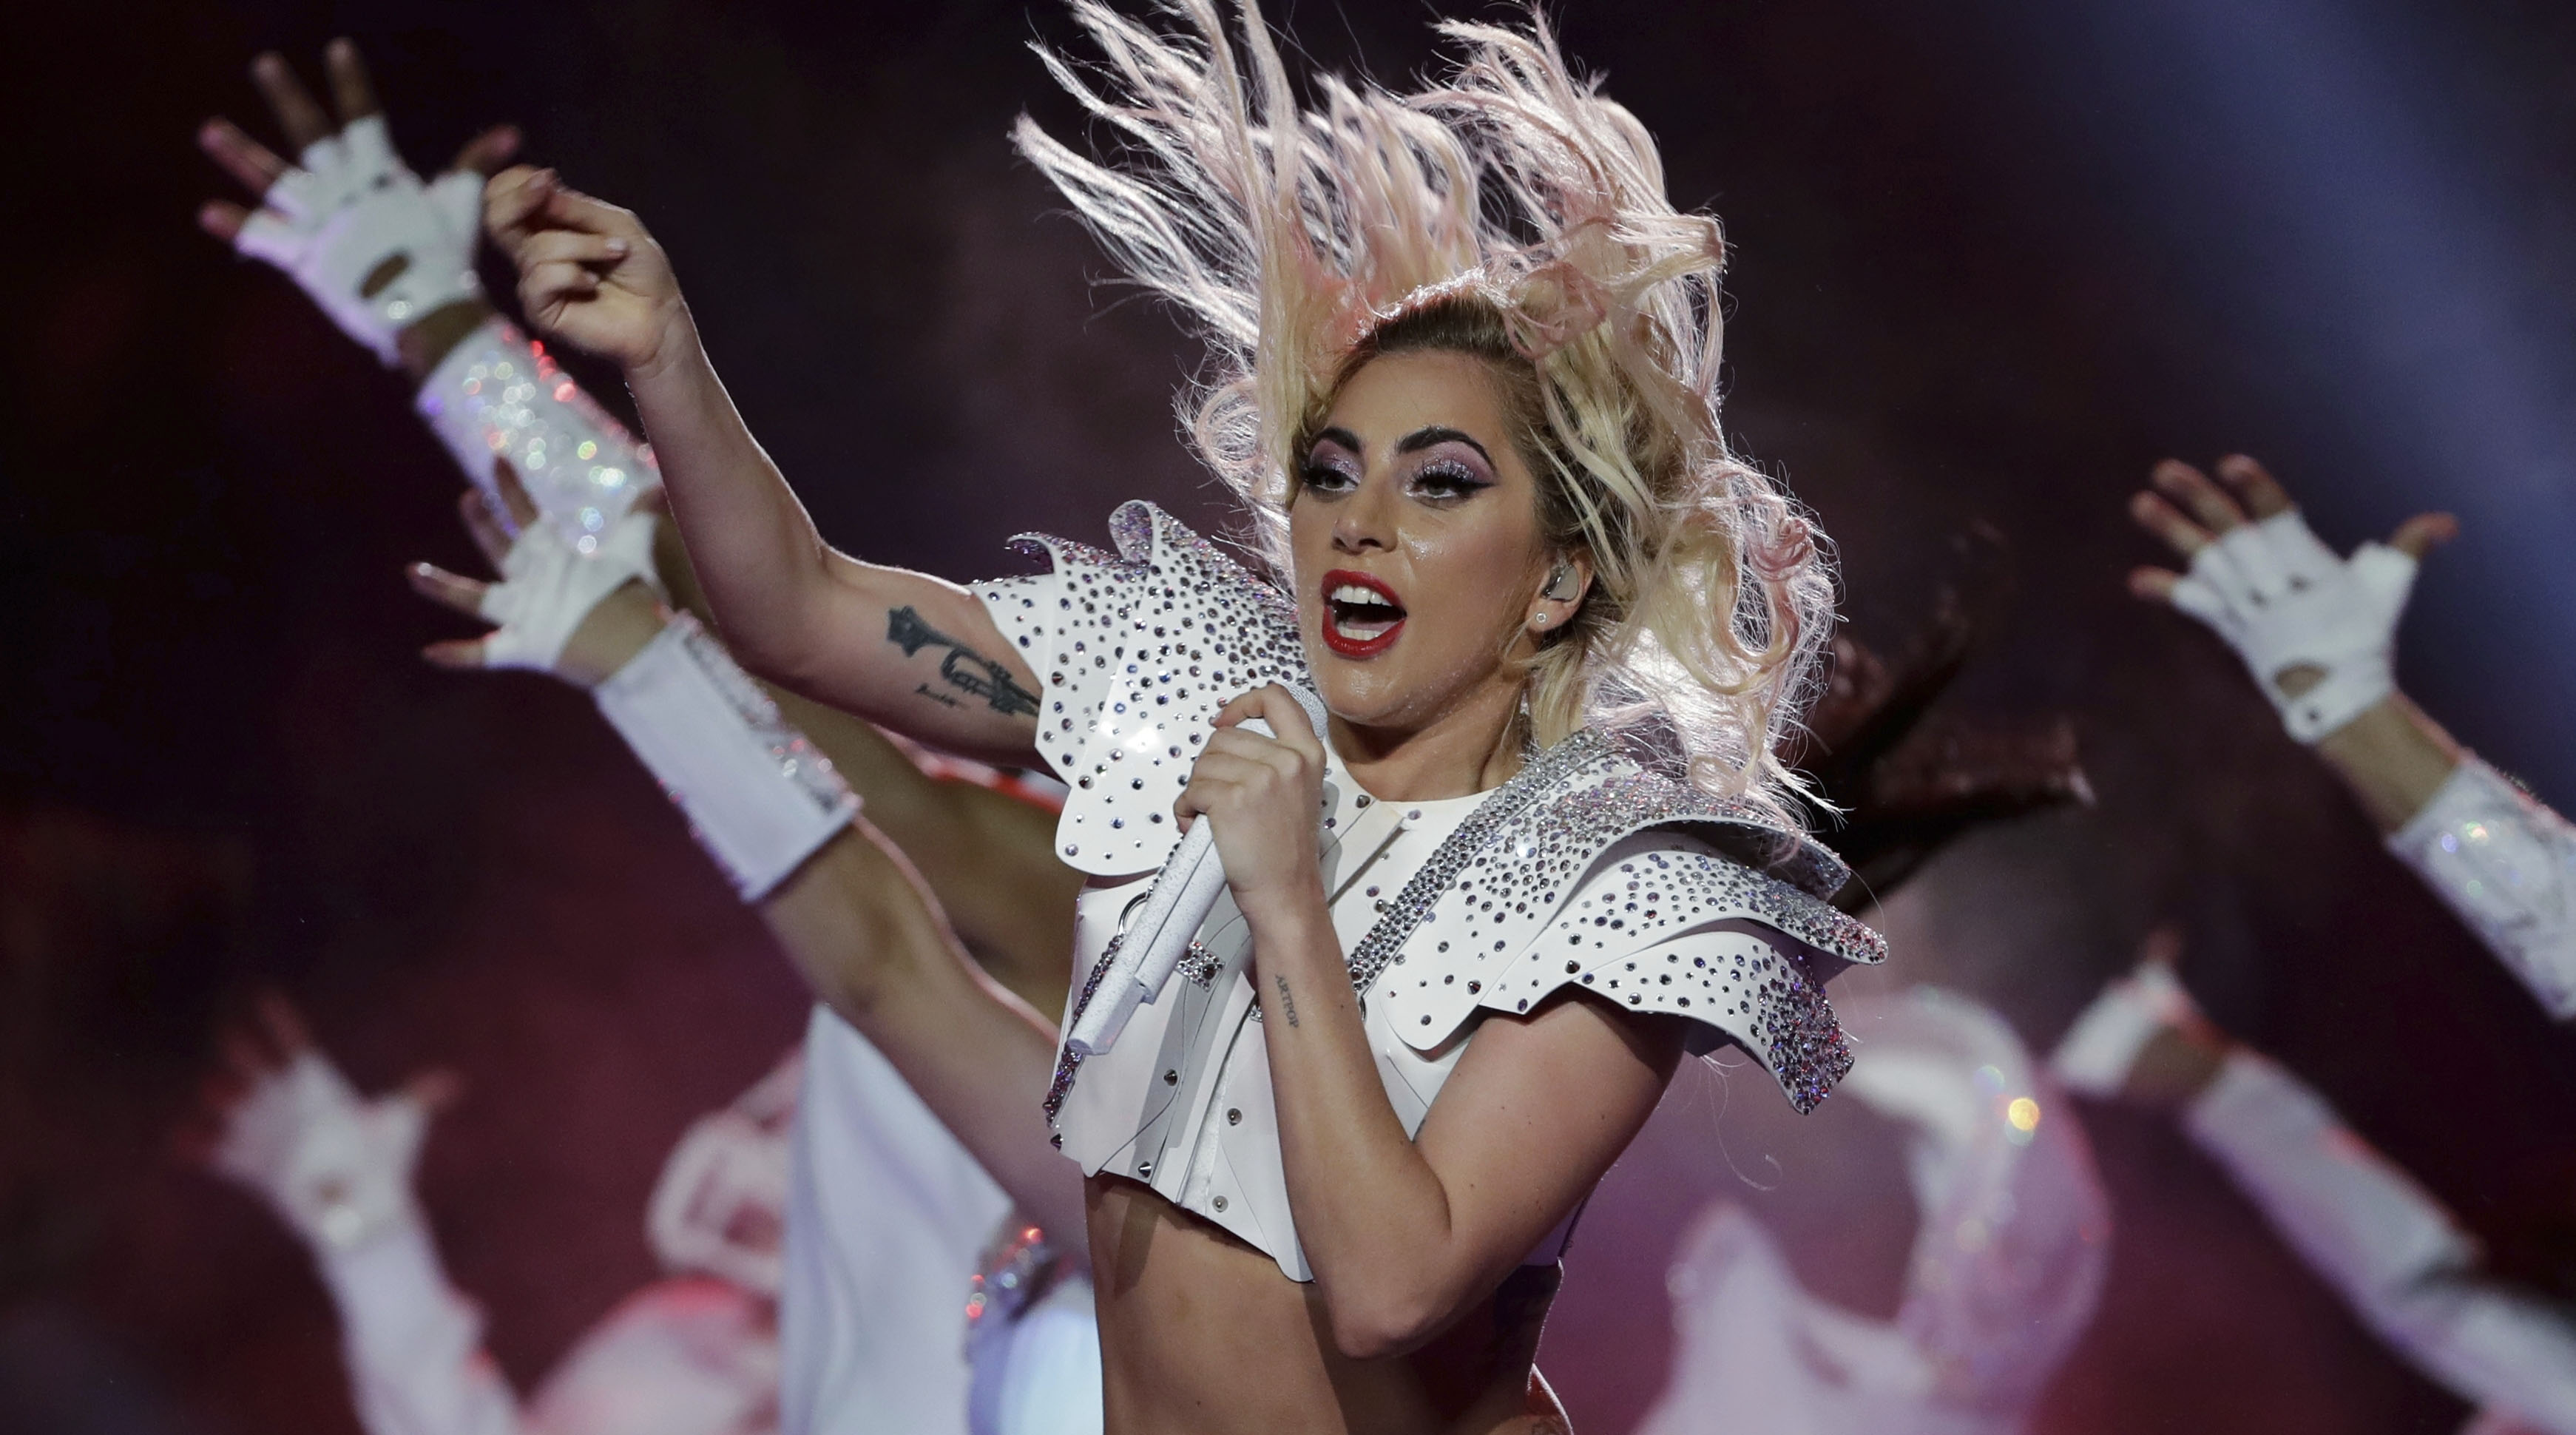 Athletes and celebrities react to Lady Gaga's halftime show